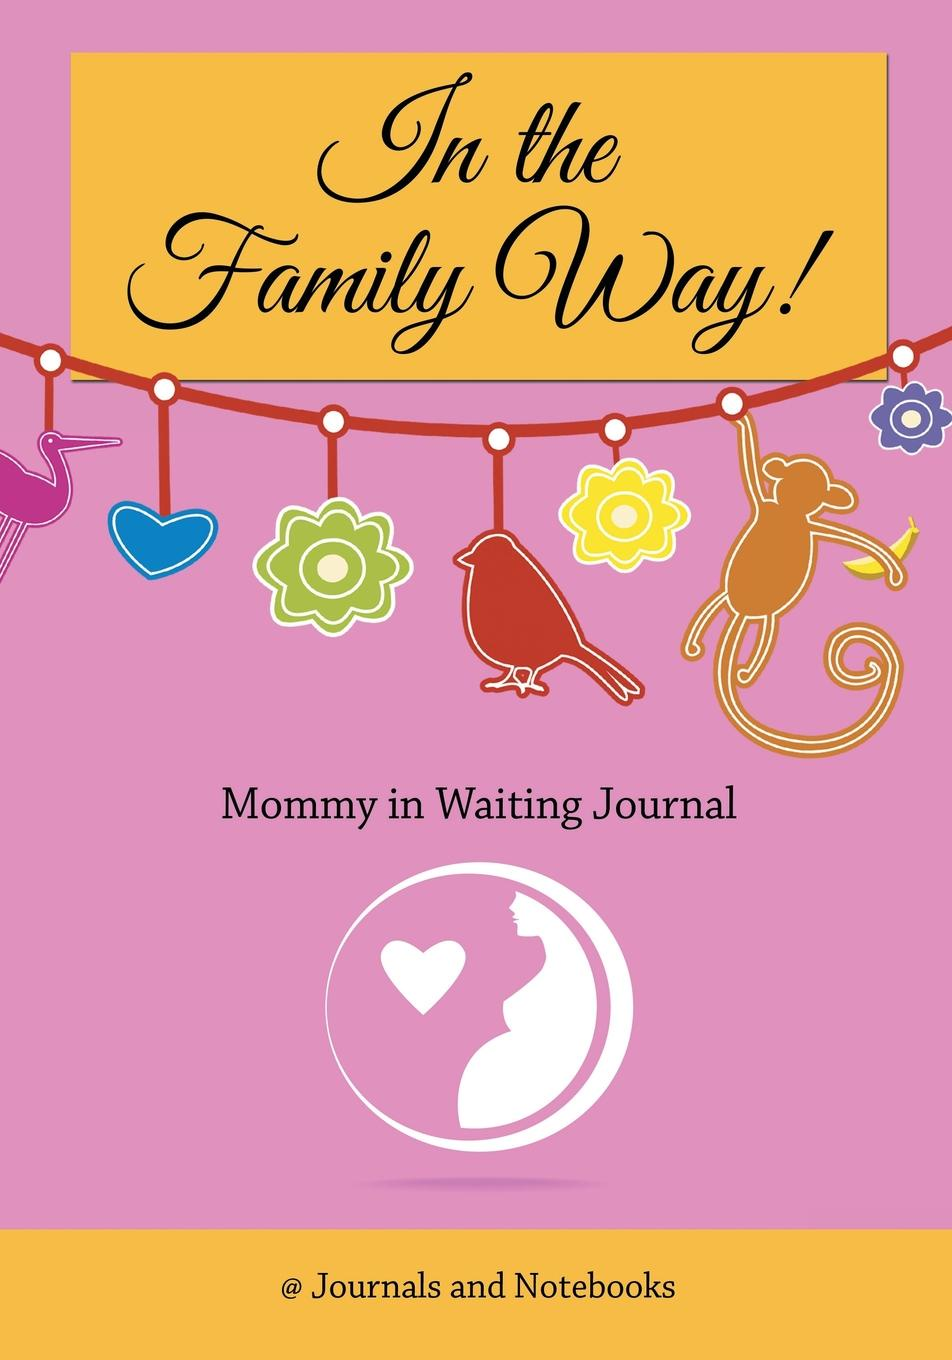 @Journals Notebooks In The Family Way. Mommy in Waiting Journal set wonders in the new year s plaid